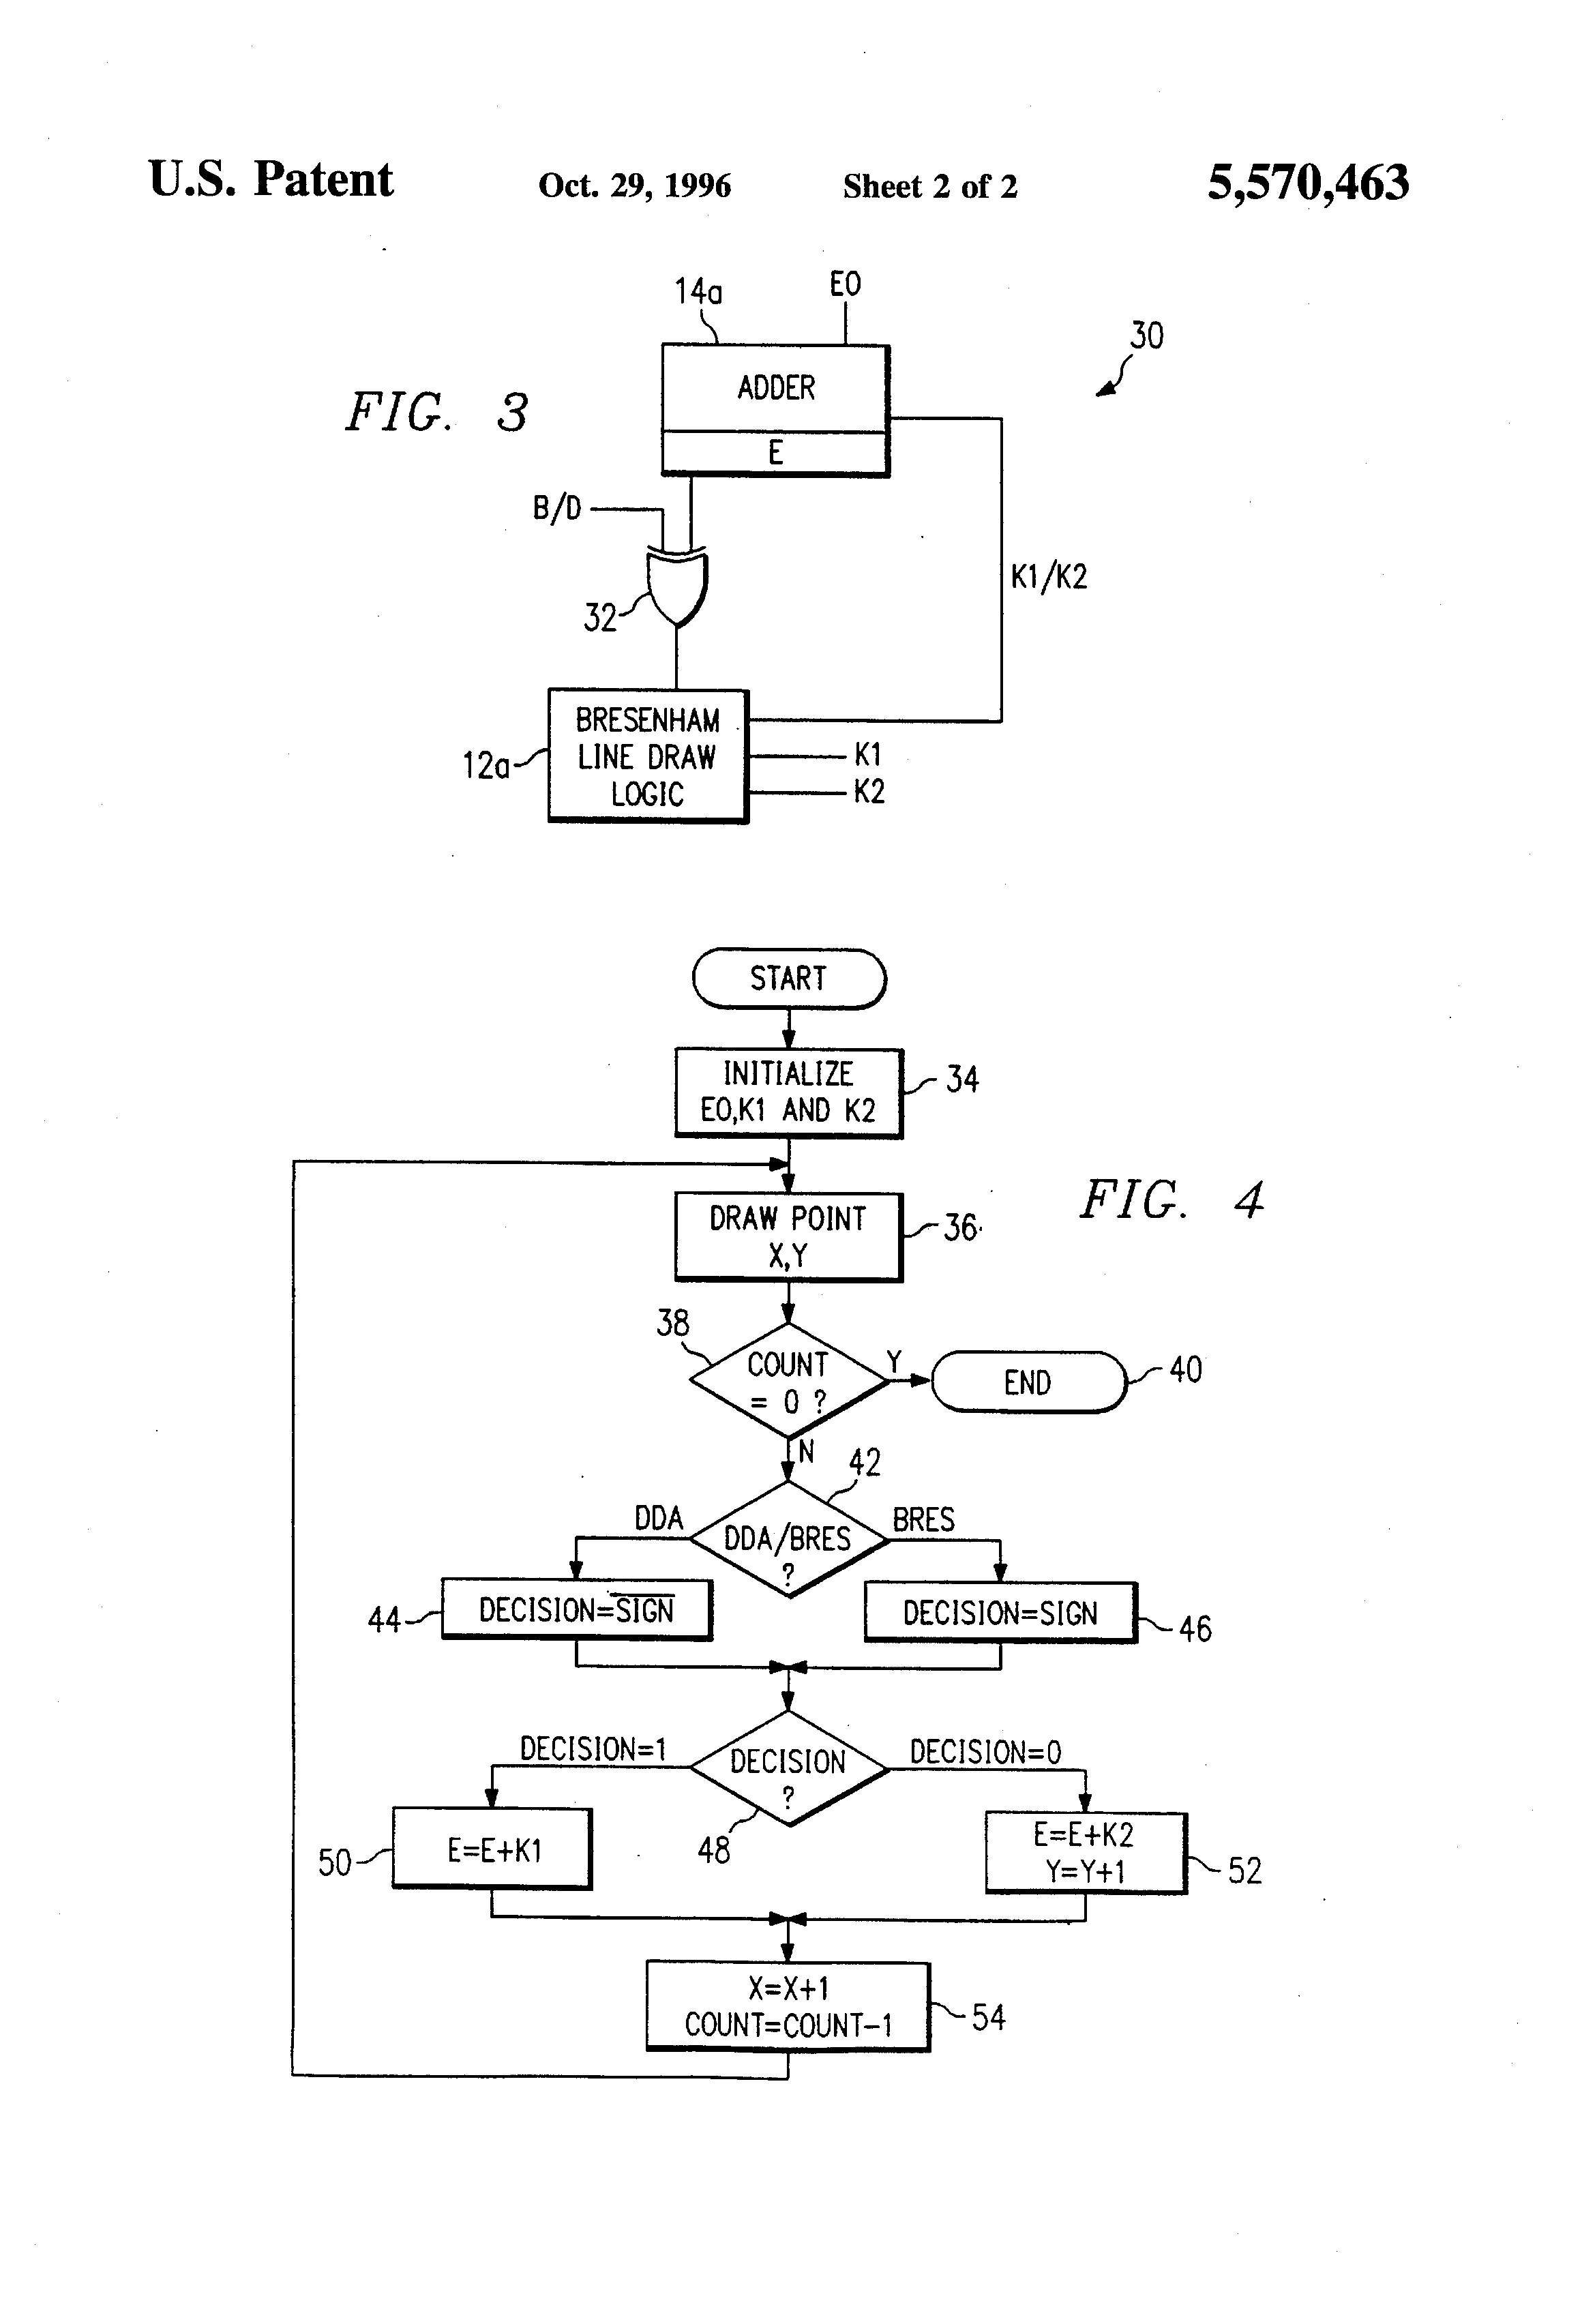 Line Drawing Algorithm With An Example : Patent us bresenham dda line draw circuitry